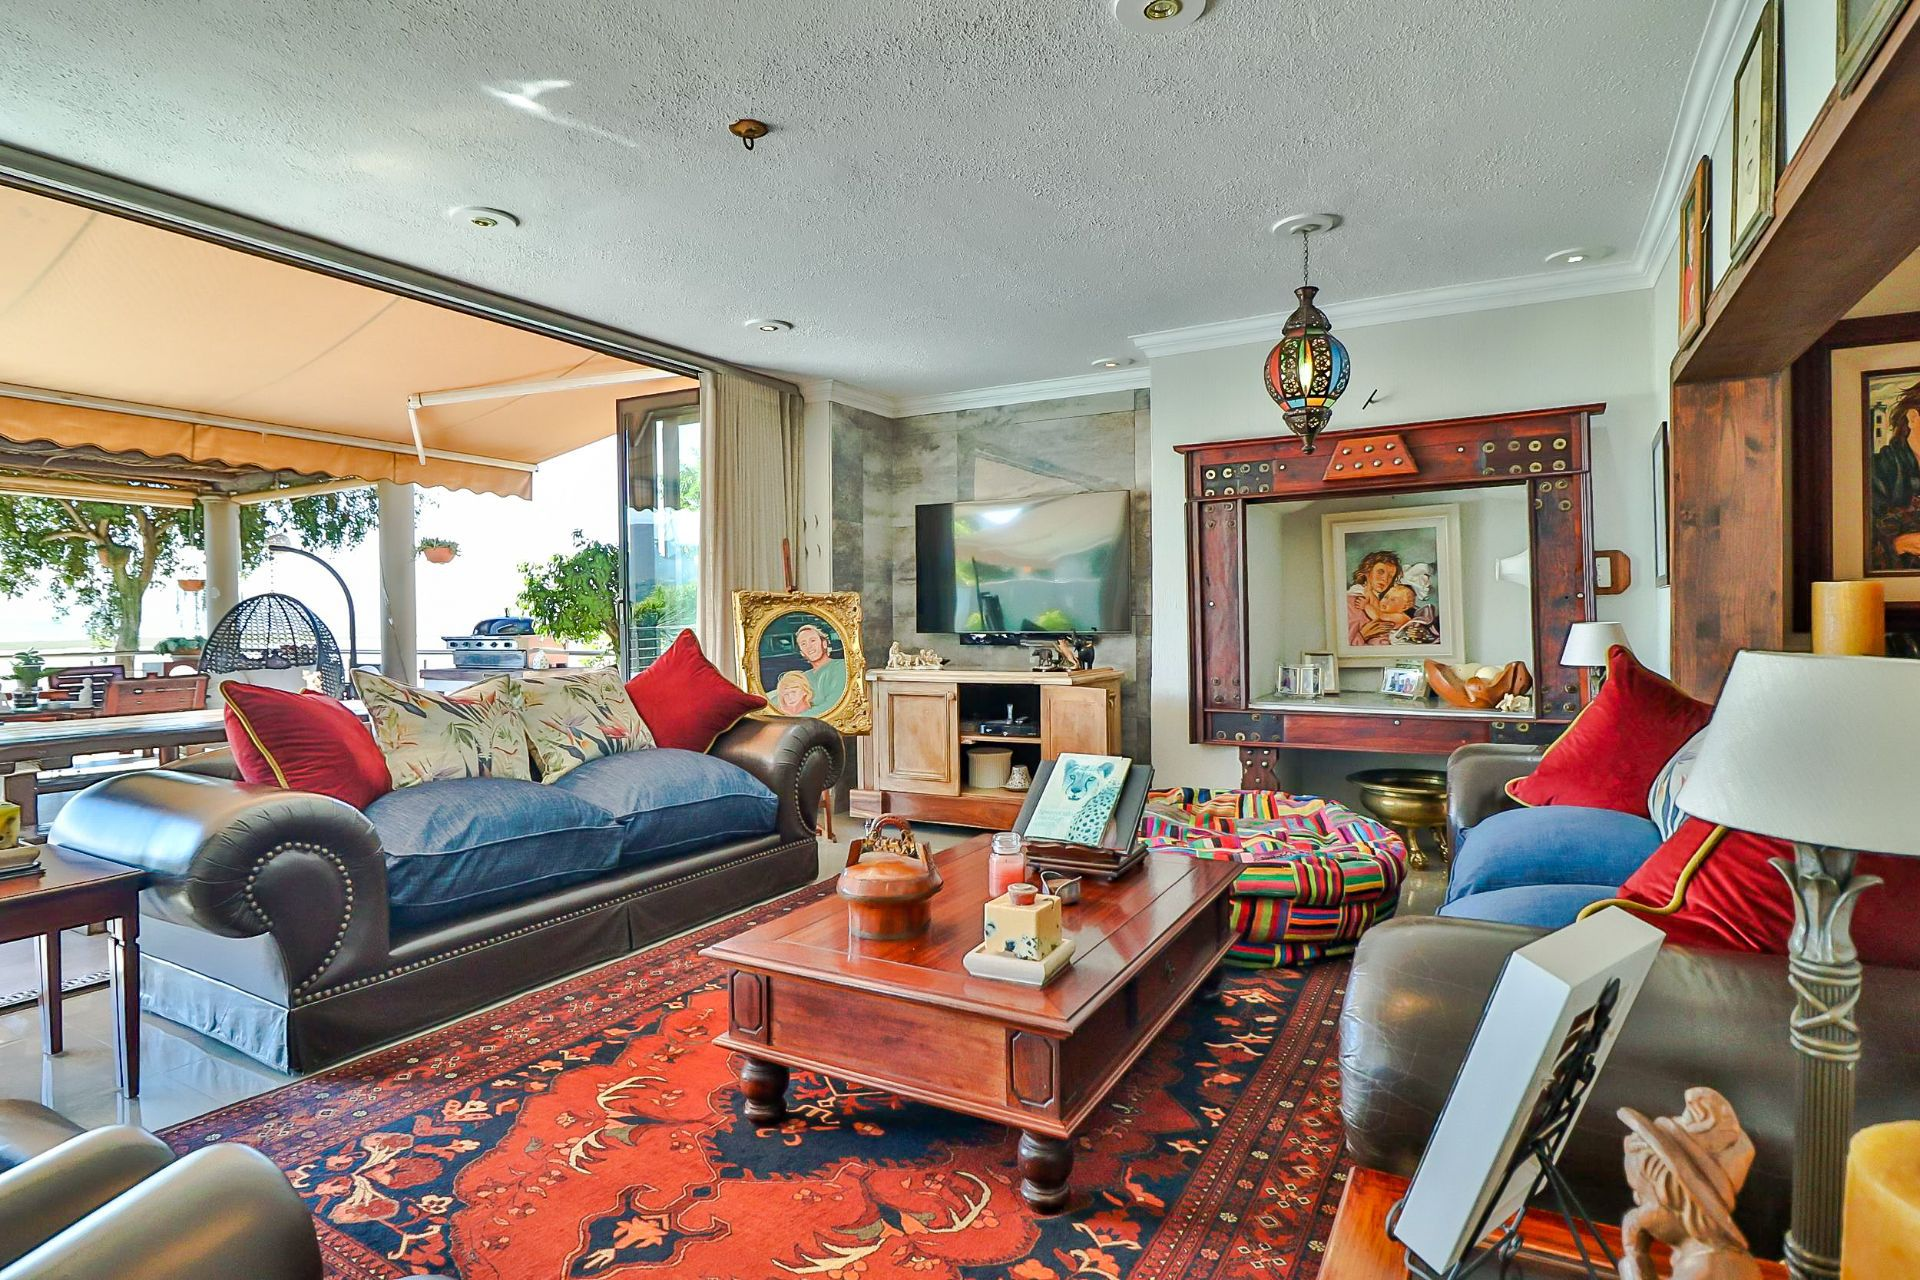 House in Kosmos Village - A glimpse of how the lounge leads seamlessly on to the patio